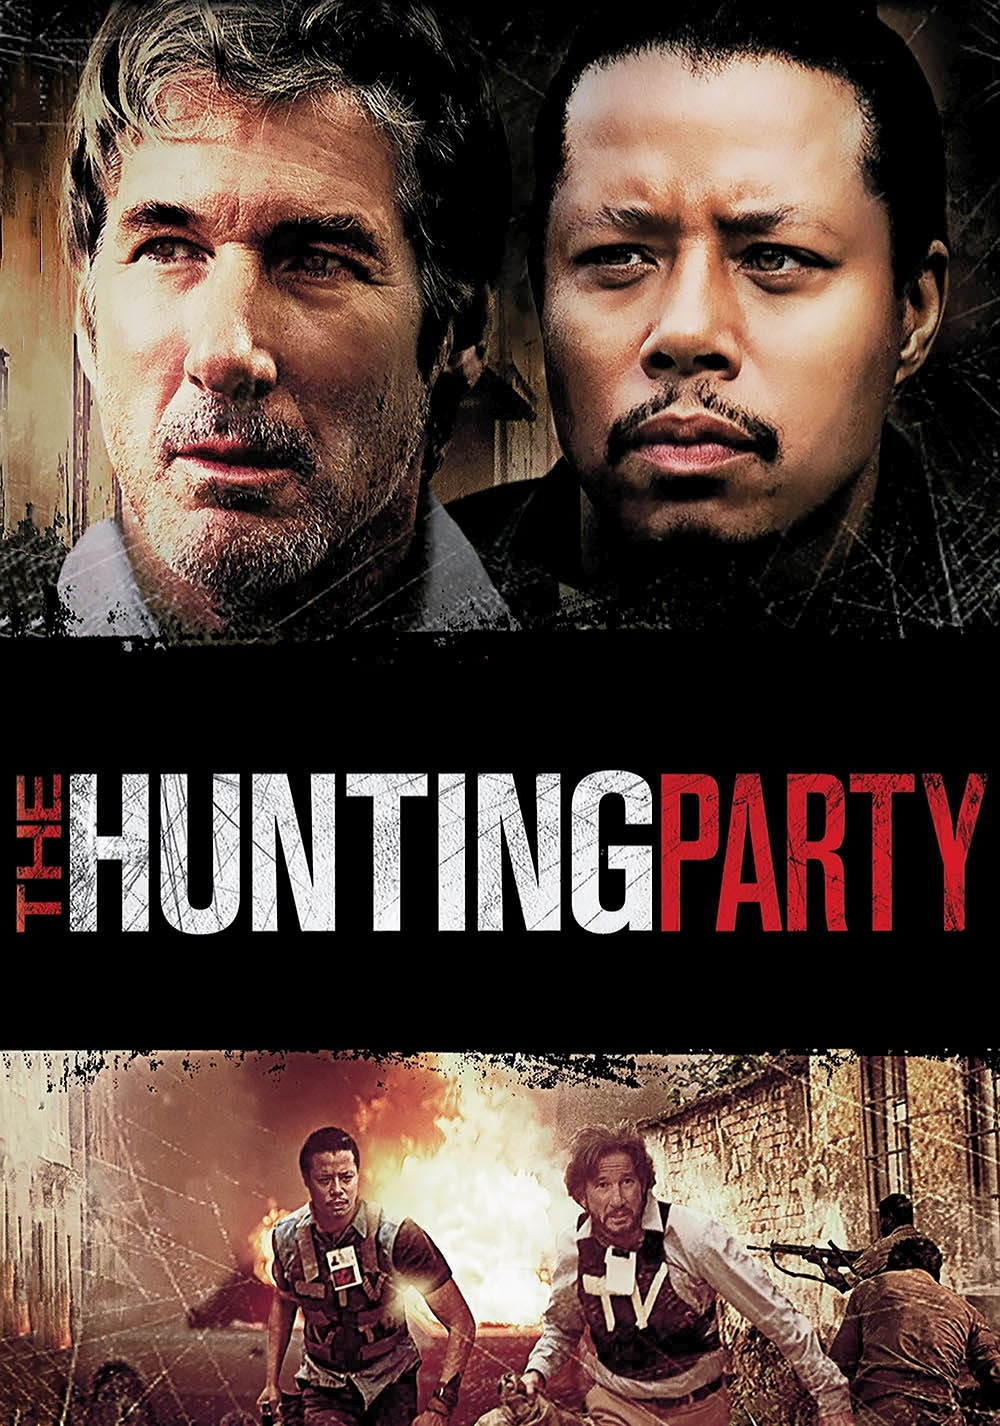 THE HUNTING PARTY (feature)(2006)